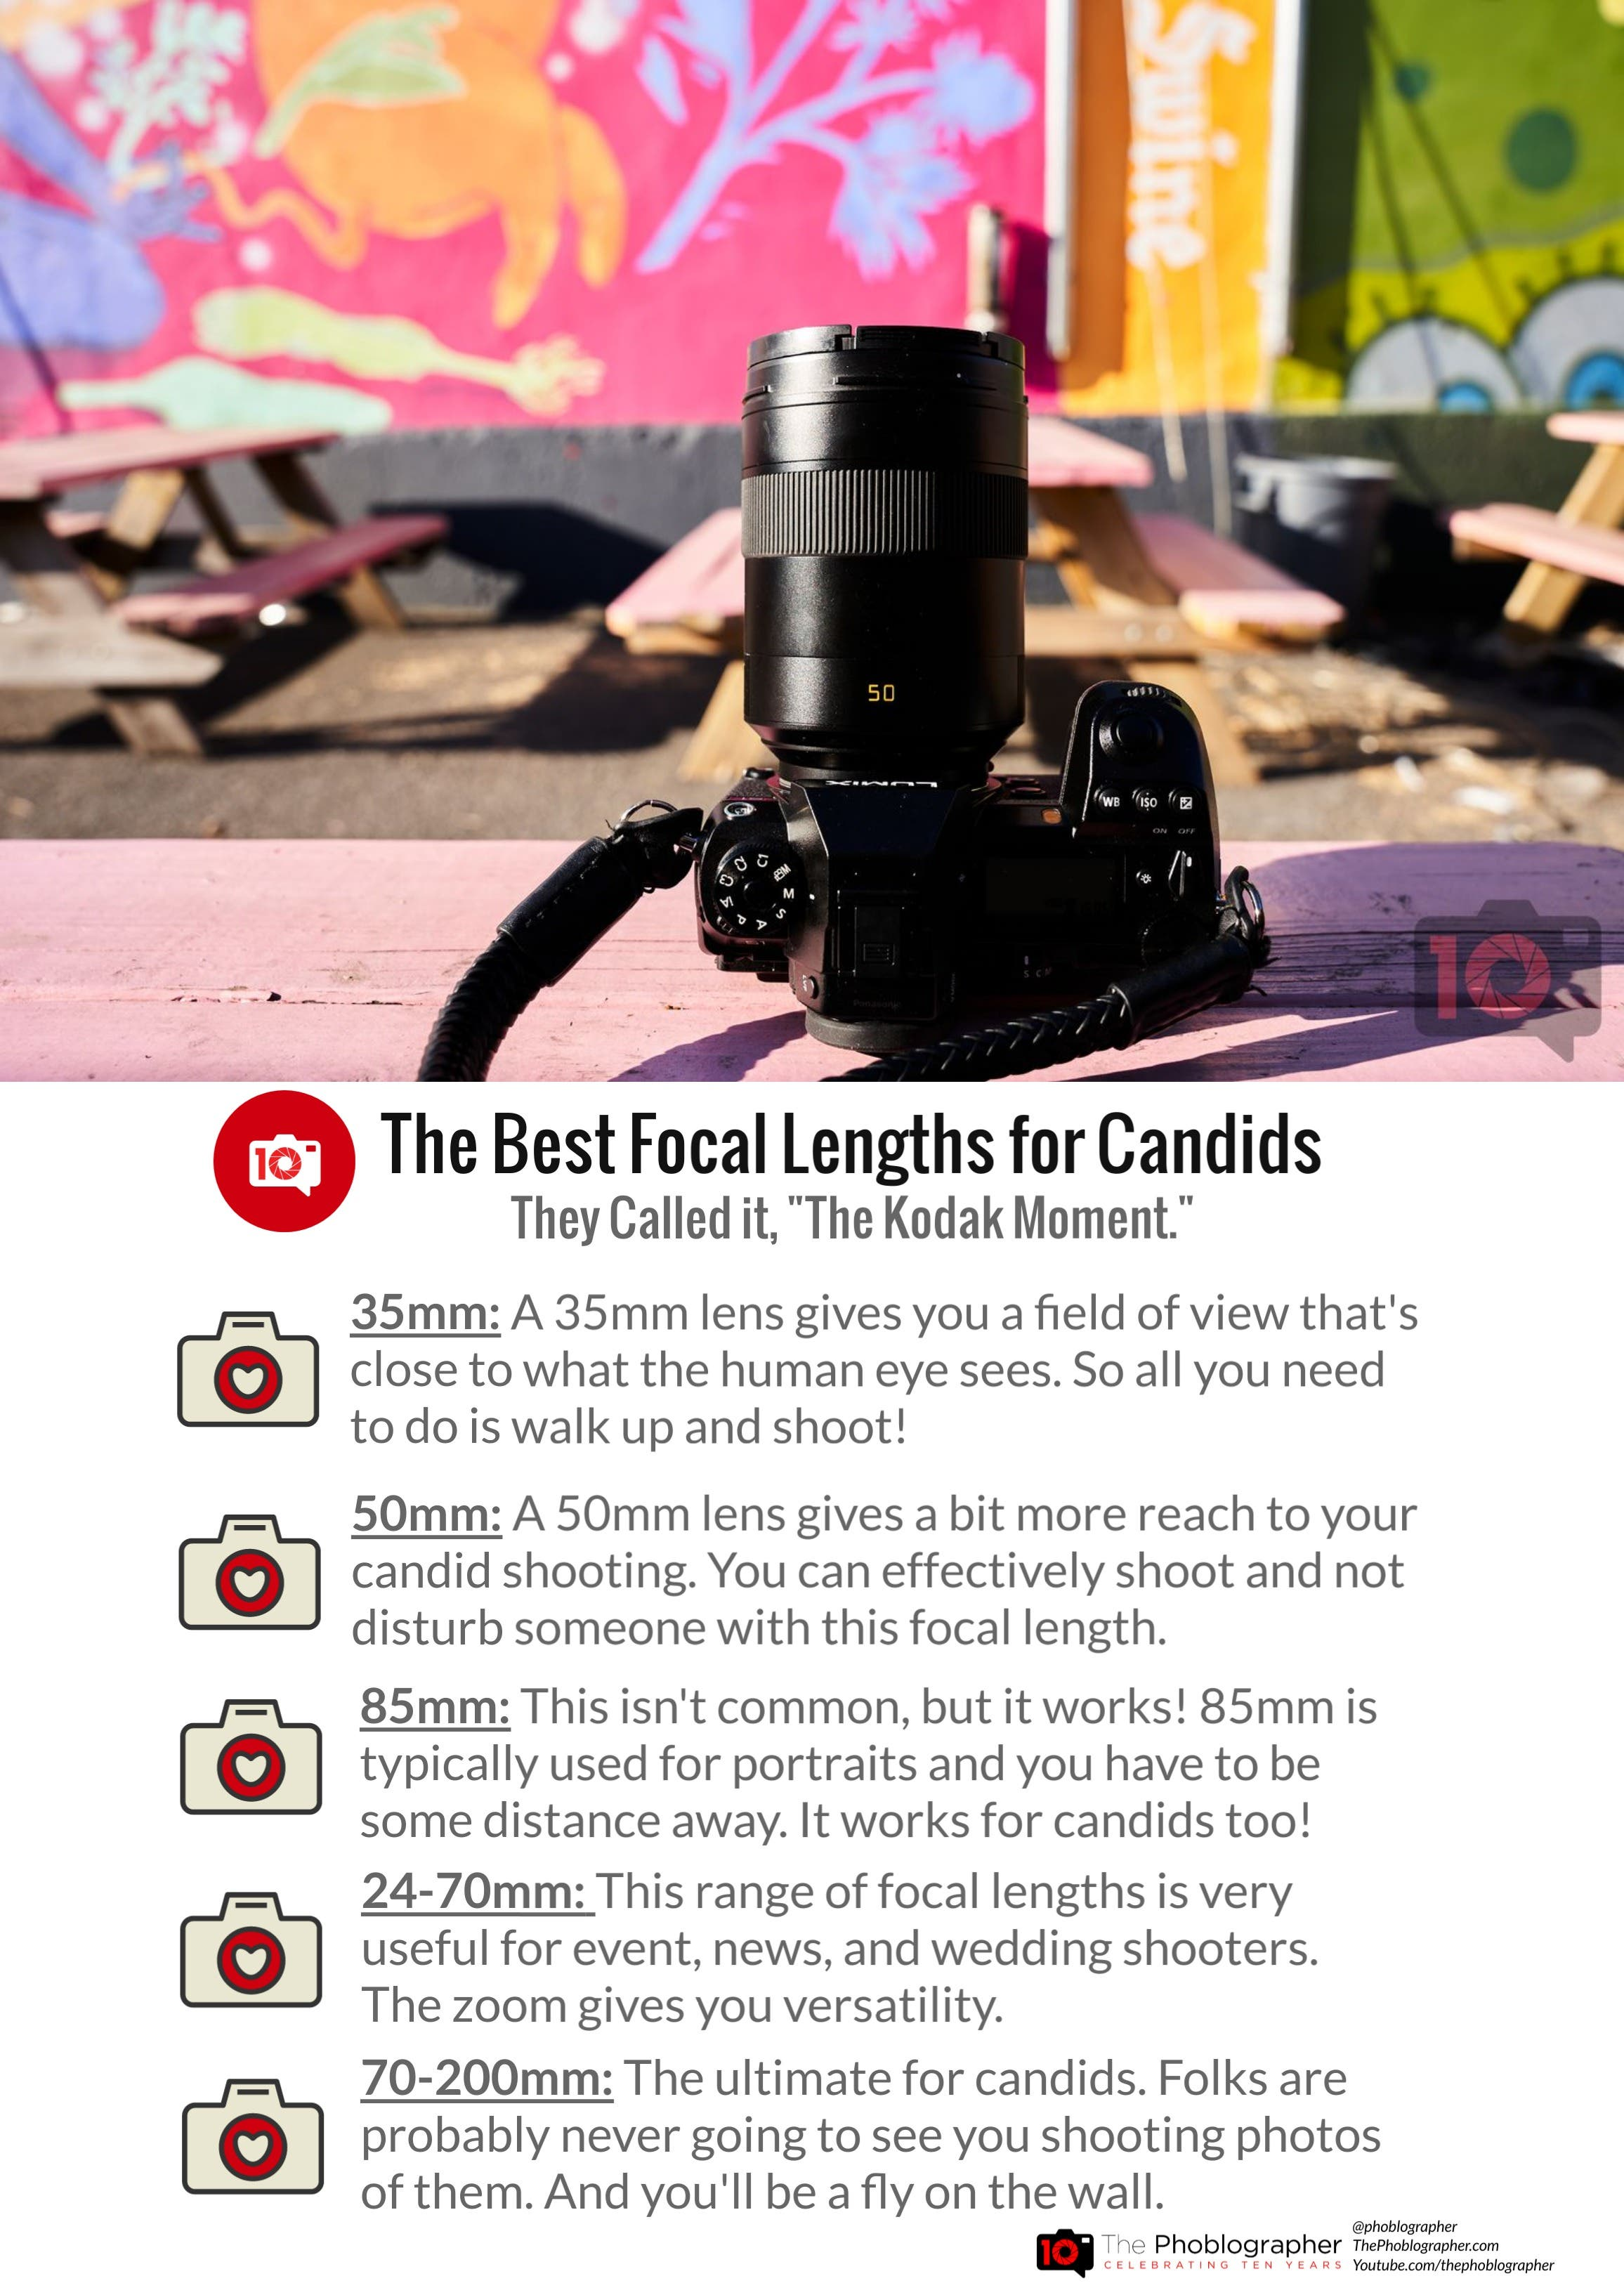 These Are The Best Focal Lengths For Capturing Candid Moments